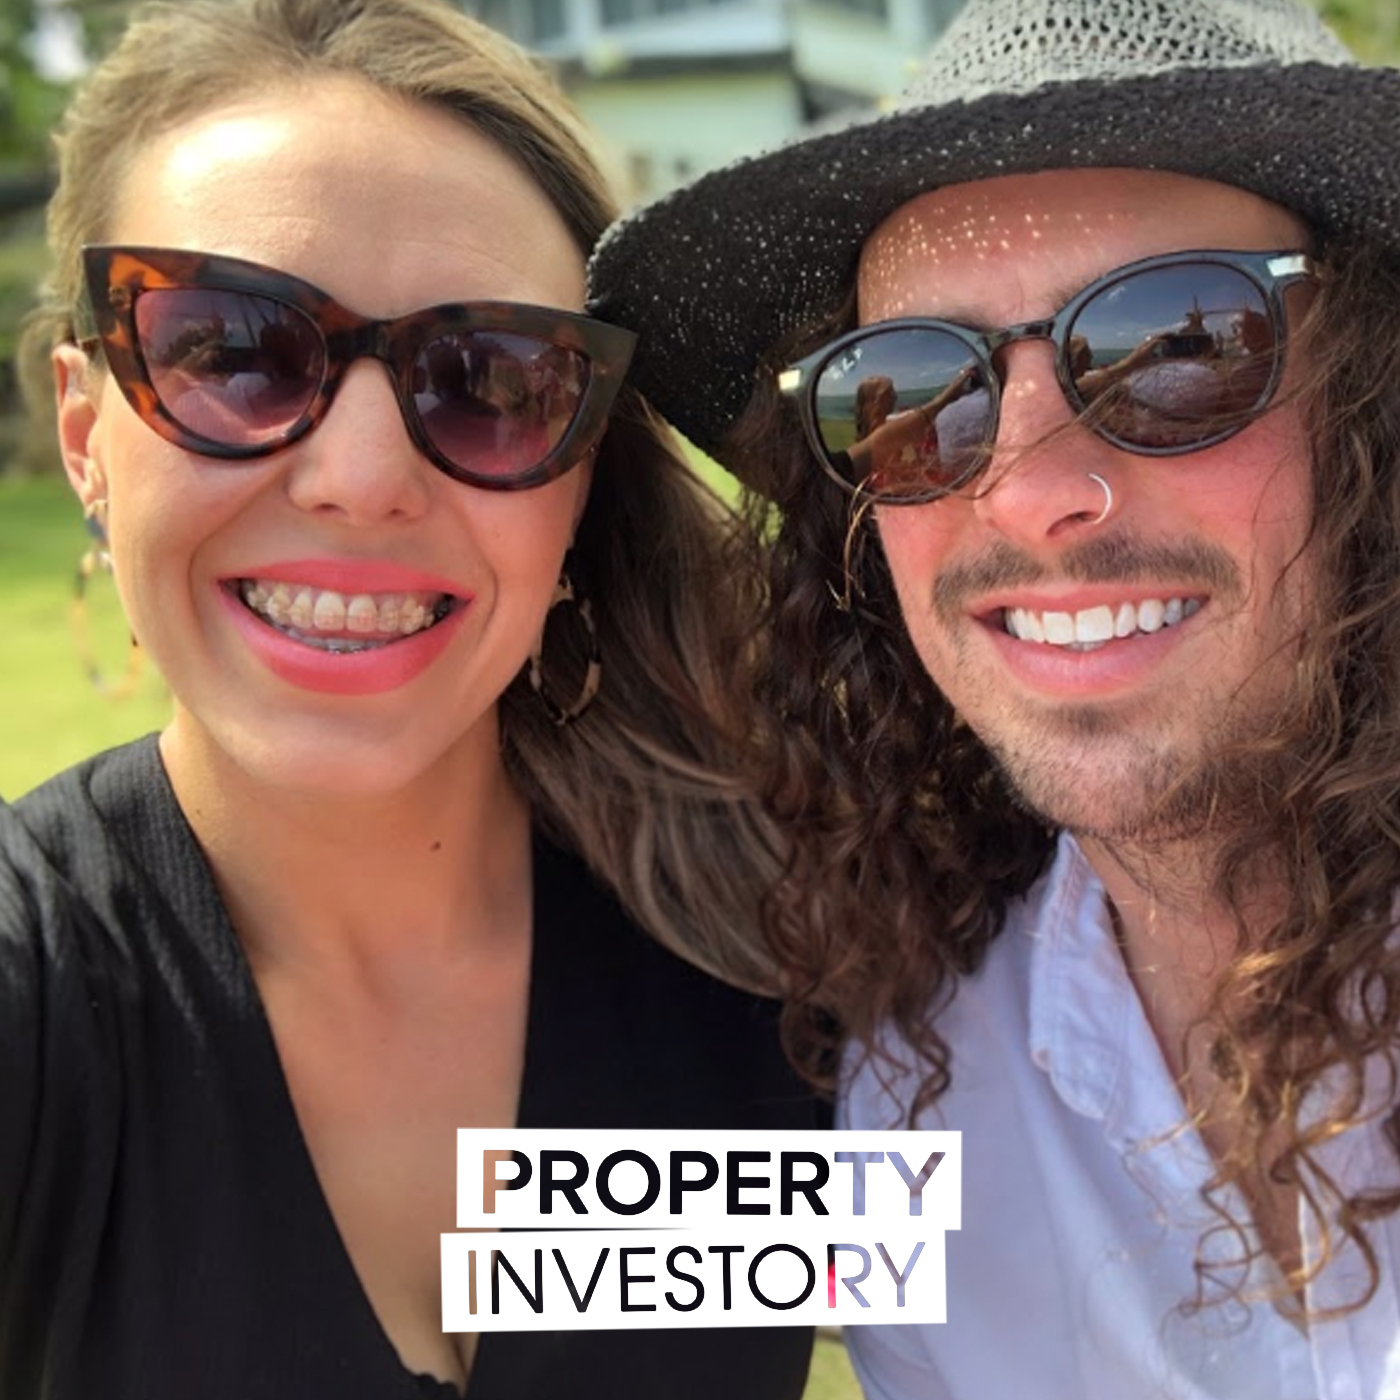 12 Months Of Property Growth & 3 Properties Later With Jessica Berrell